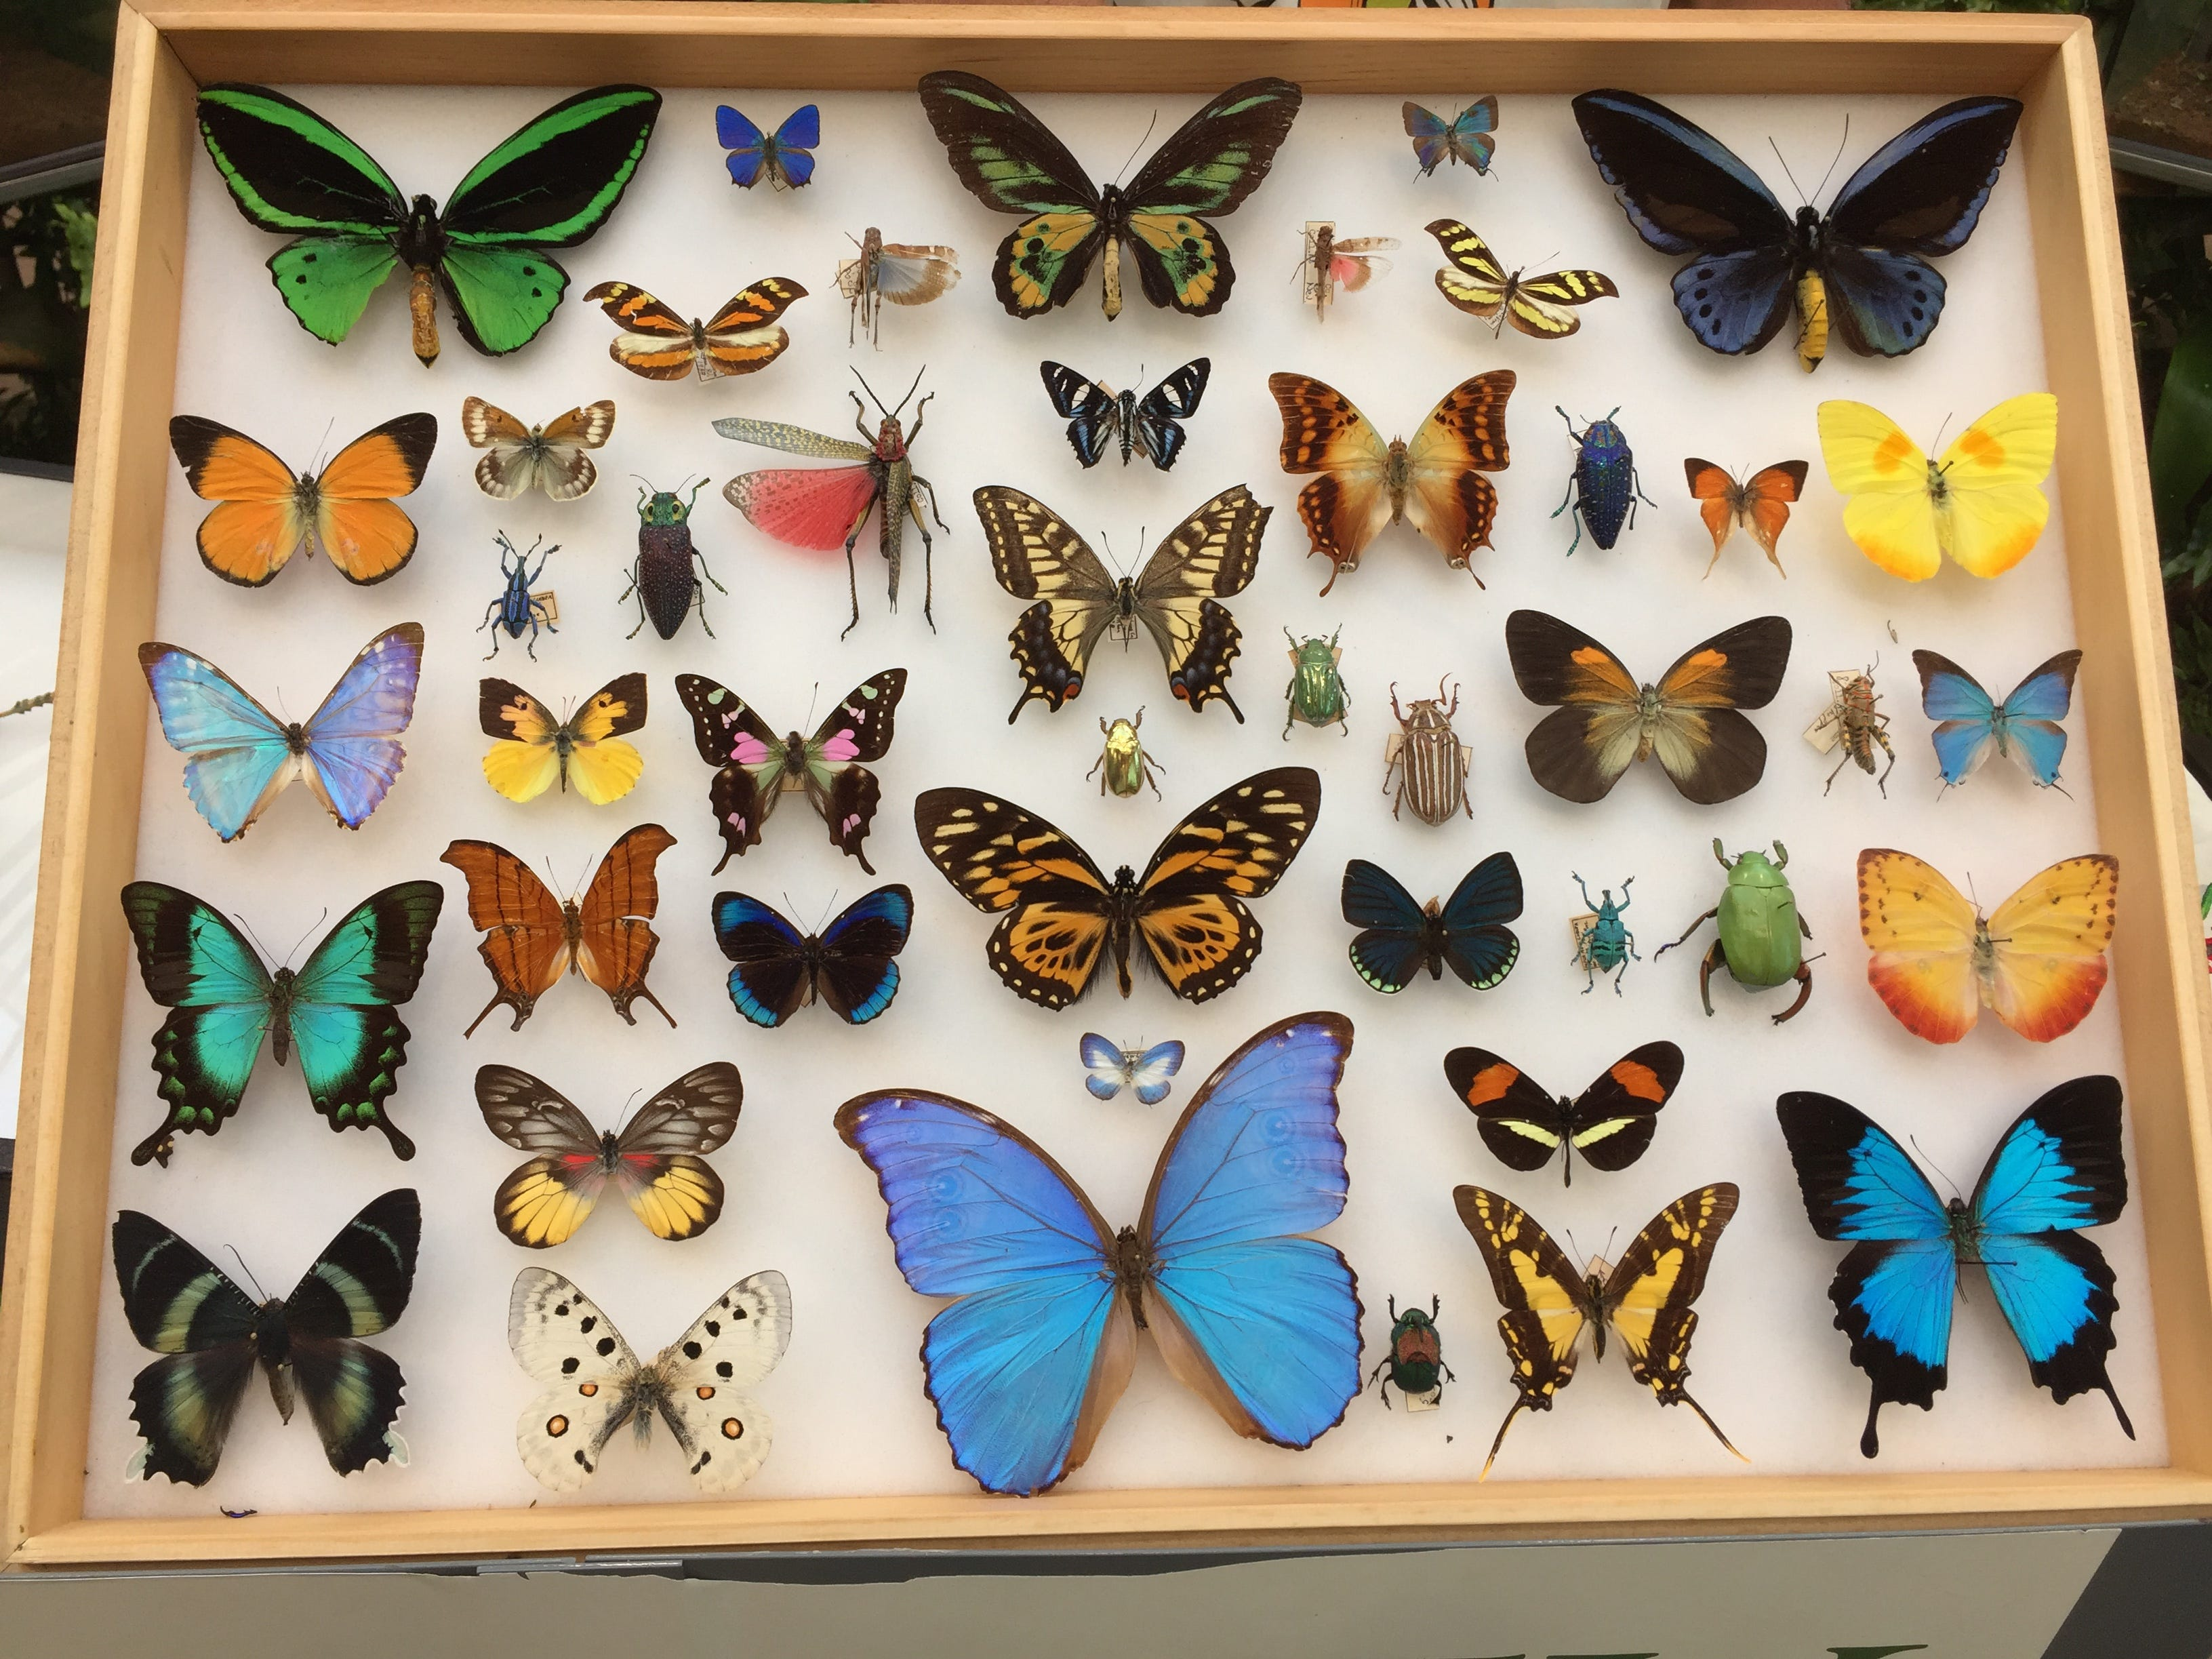 Check out these insects and displays that will be found at Bug-O-Ram at Hershey Gardens on Saturday, Sept. 8.